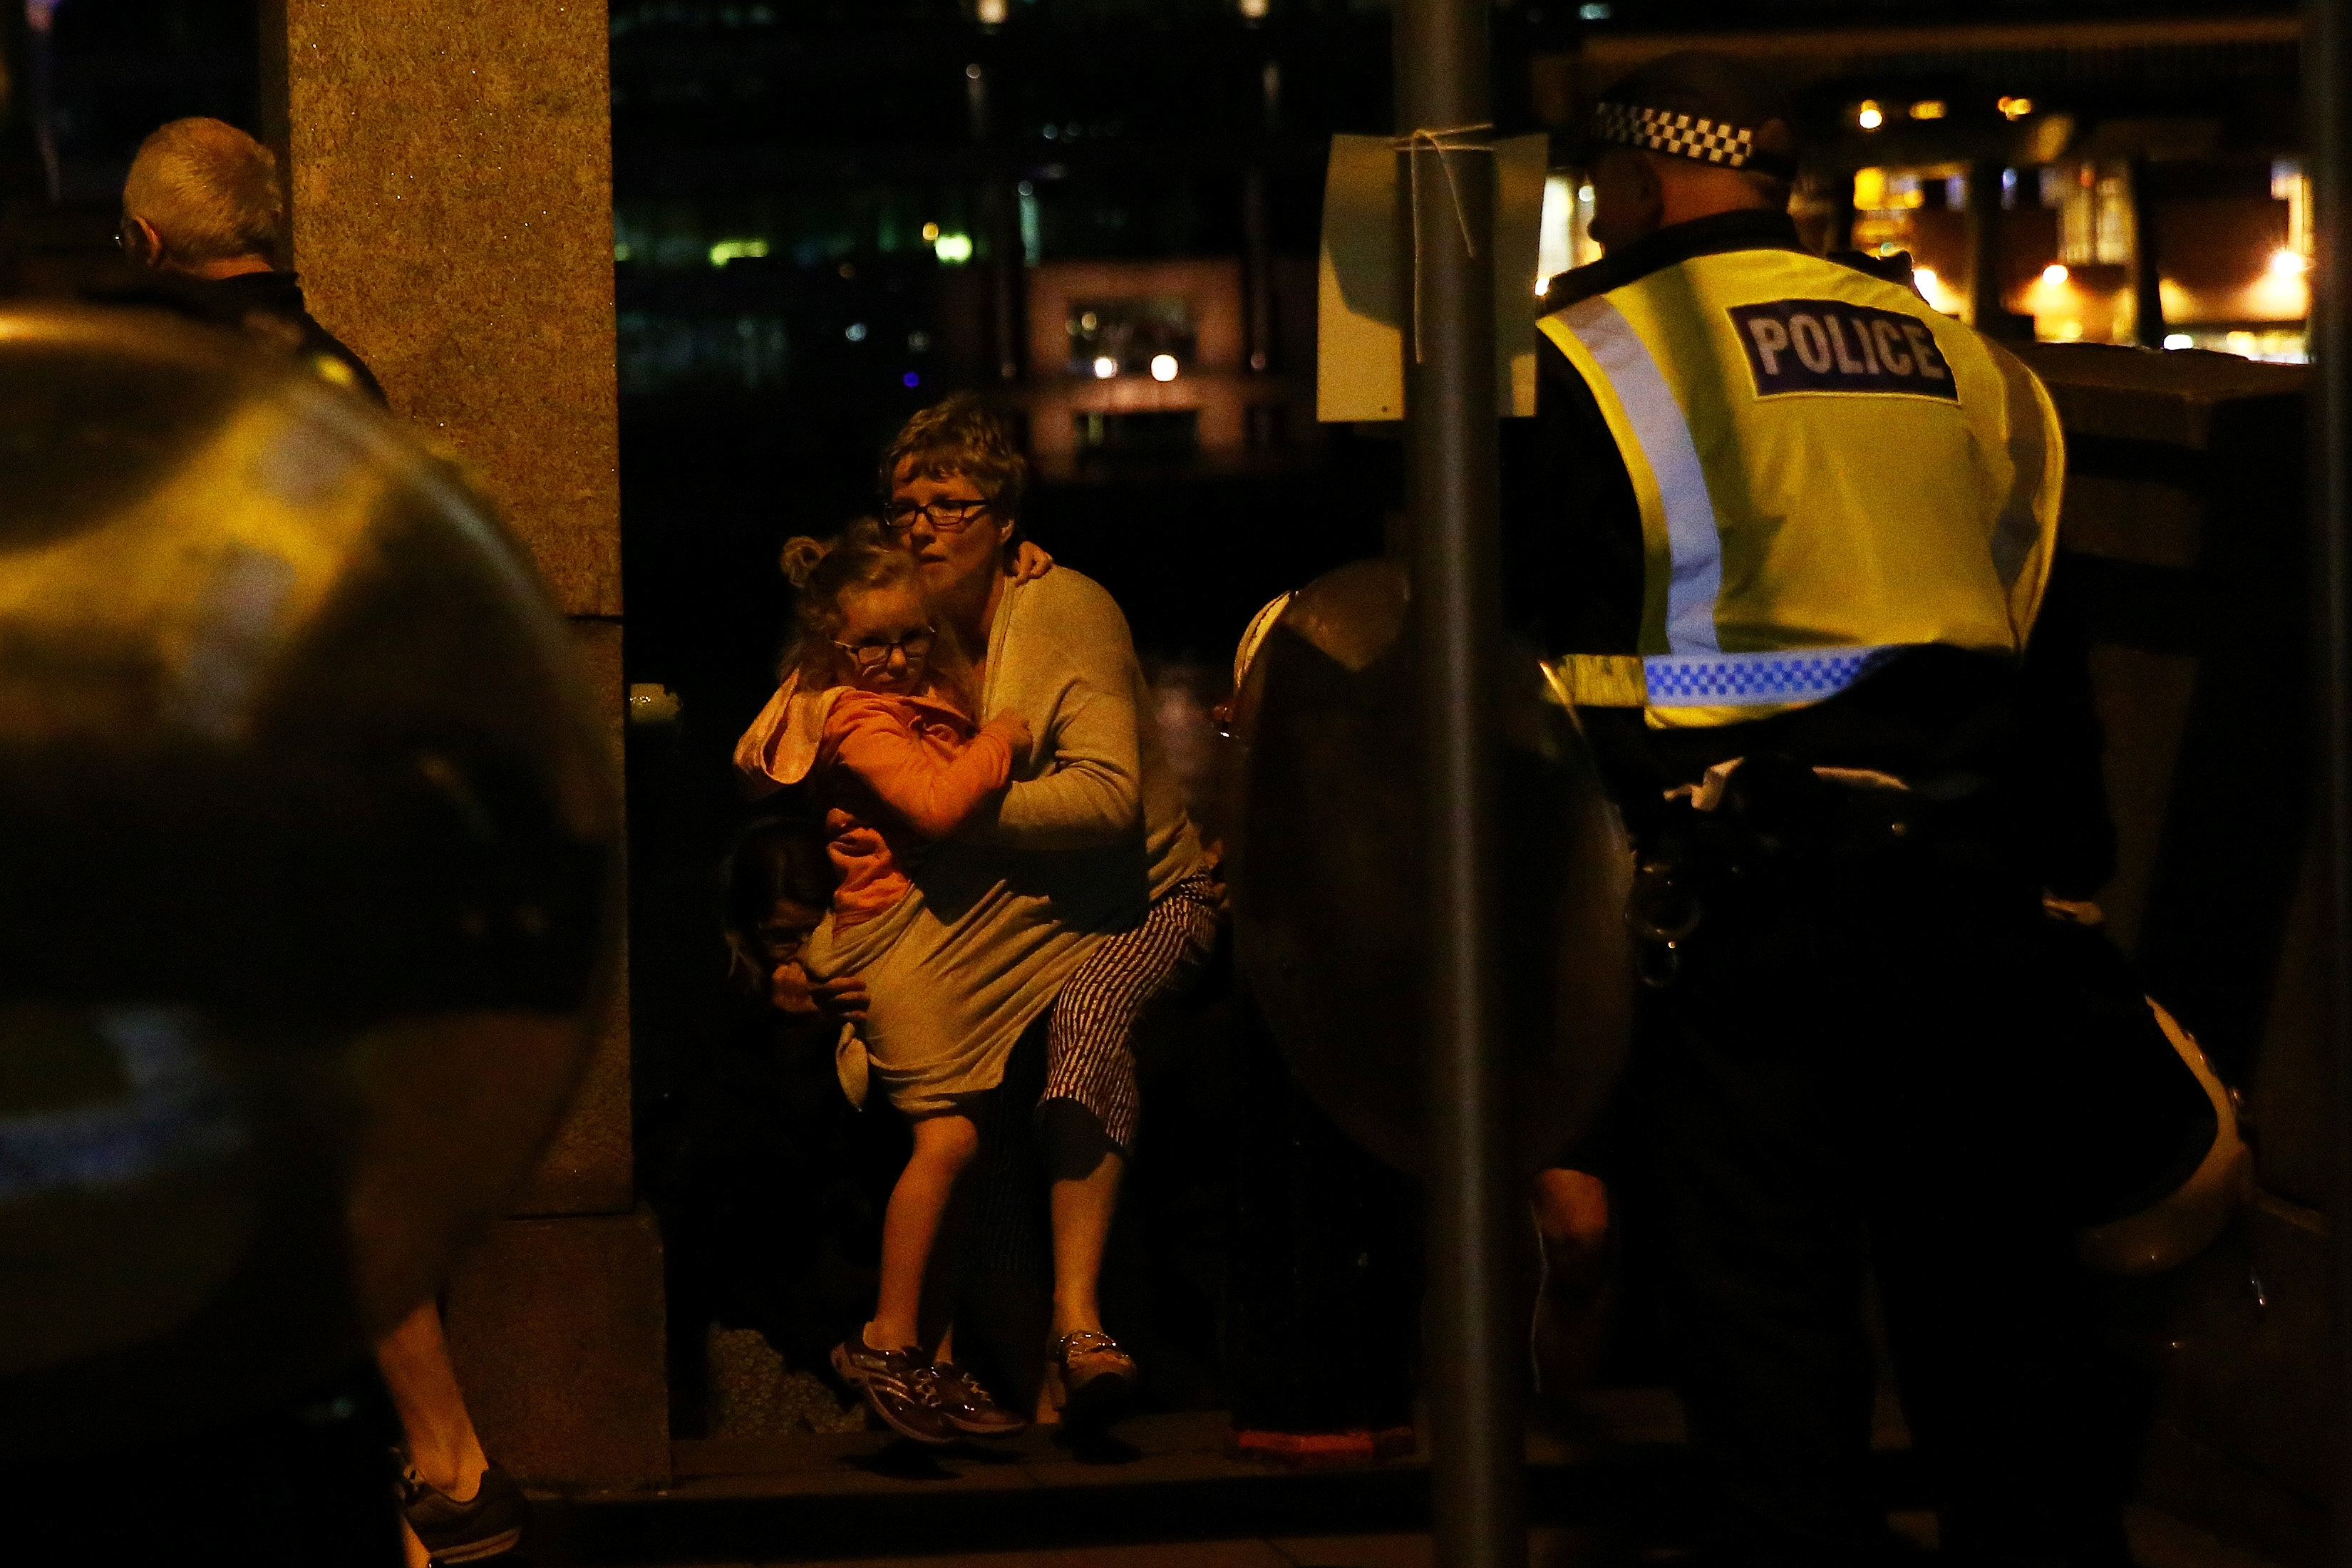 People flee as police attend to an incident near London Bridge in London, Britain, June 4, 2017. REUTERS/Neil Hall